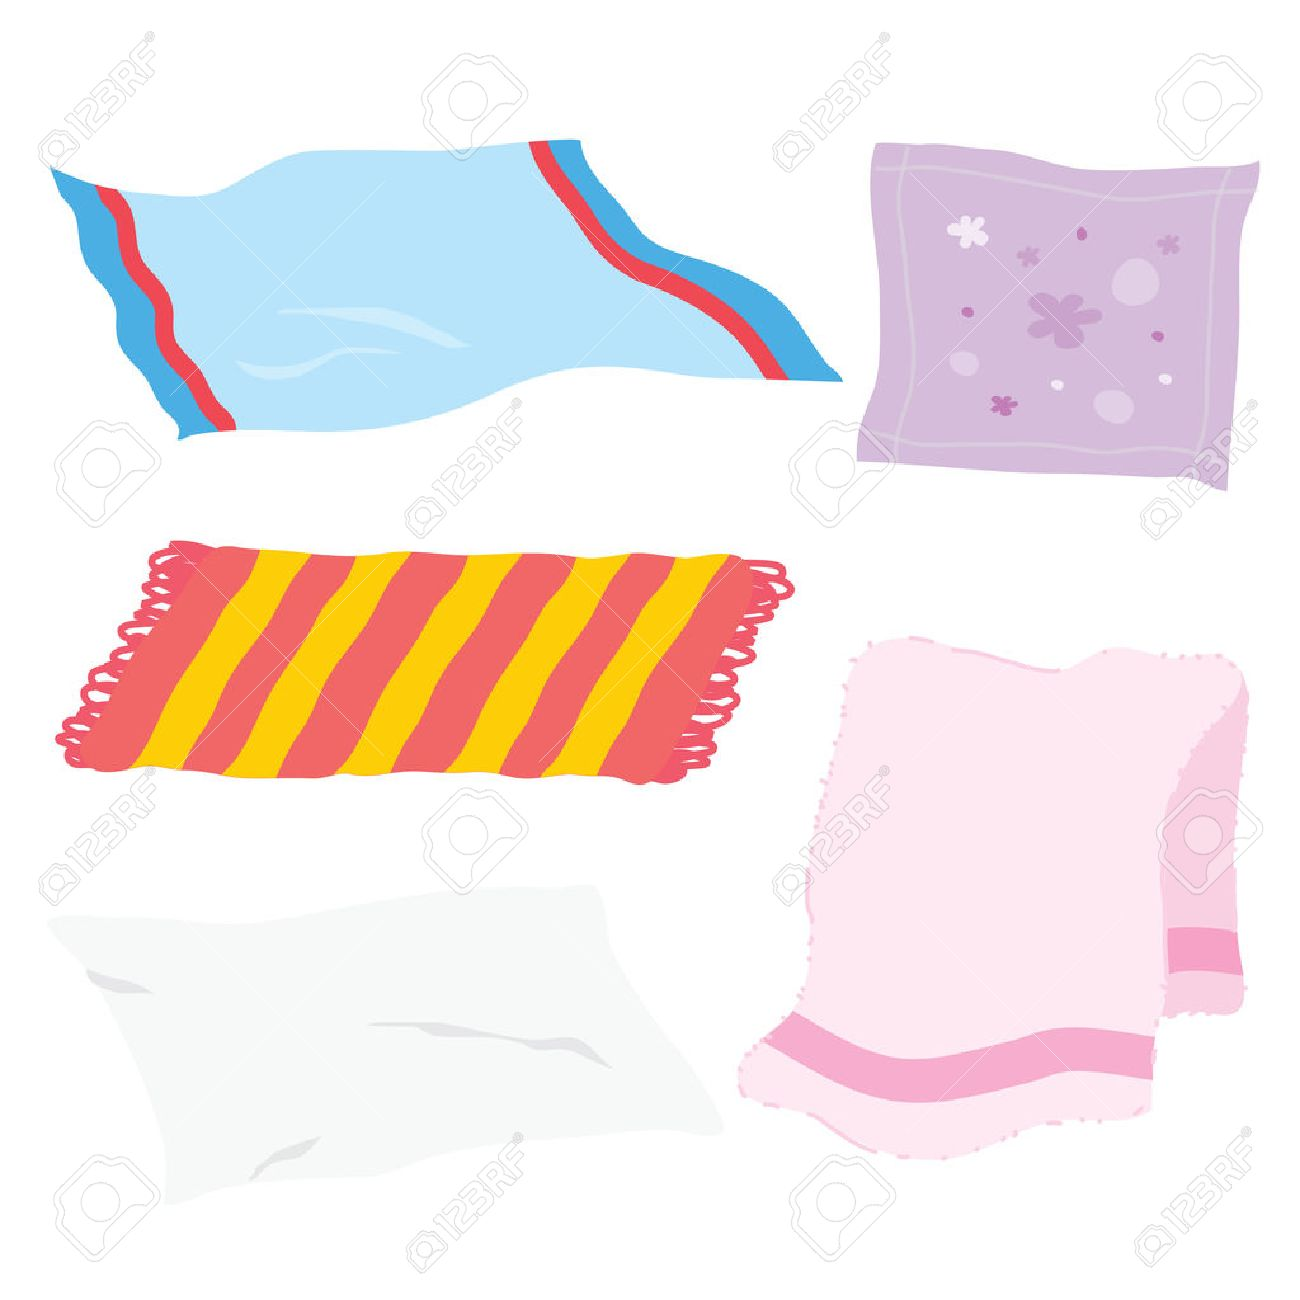 622b9af5f57c13 Carpet towel sheet napkin handkerchief rag fabric cloth cartoon vector stock  vector jpg 1300x1300 Cloth rag